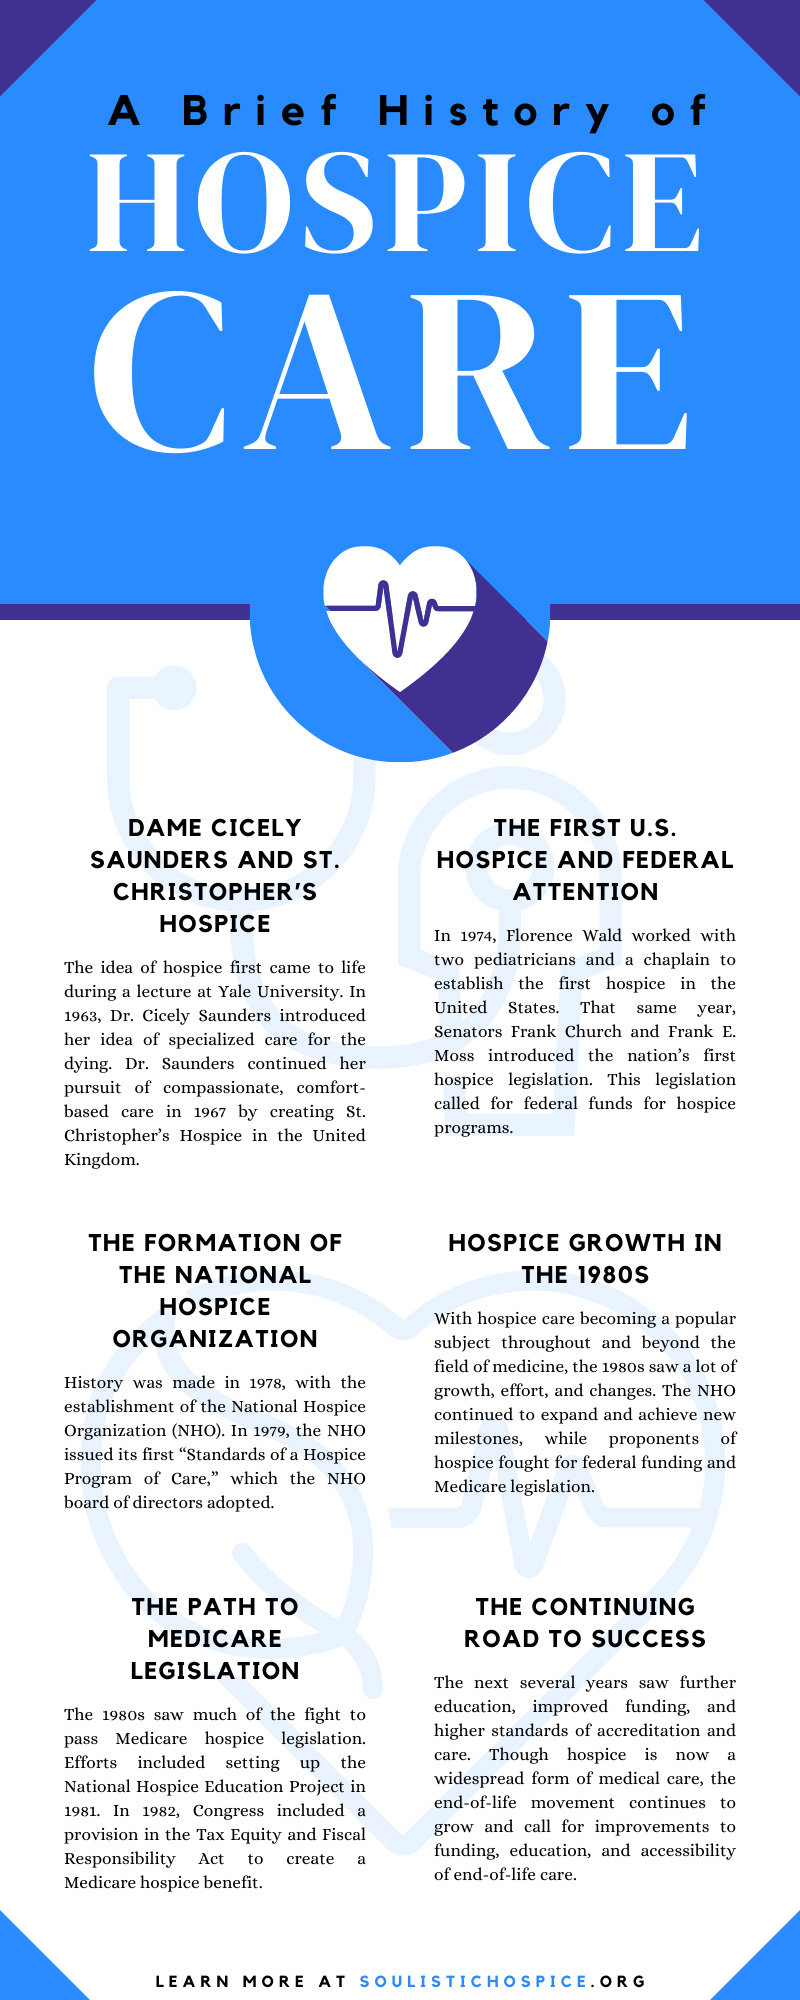 A Brief History of Hospice Care